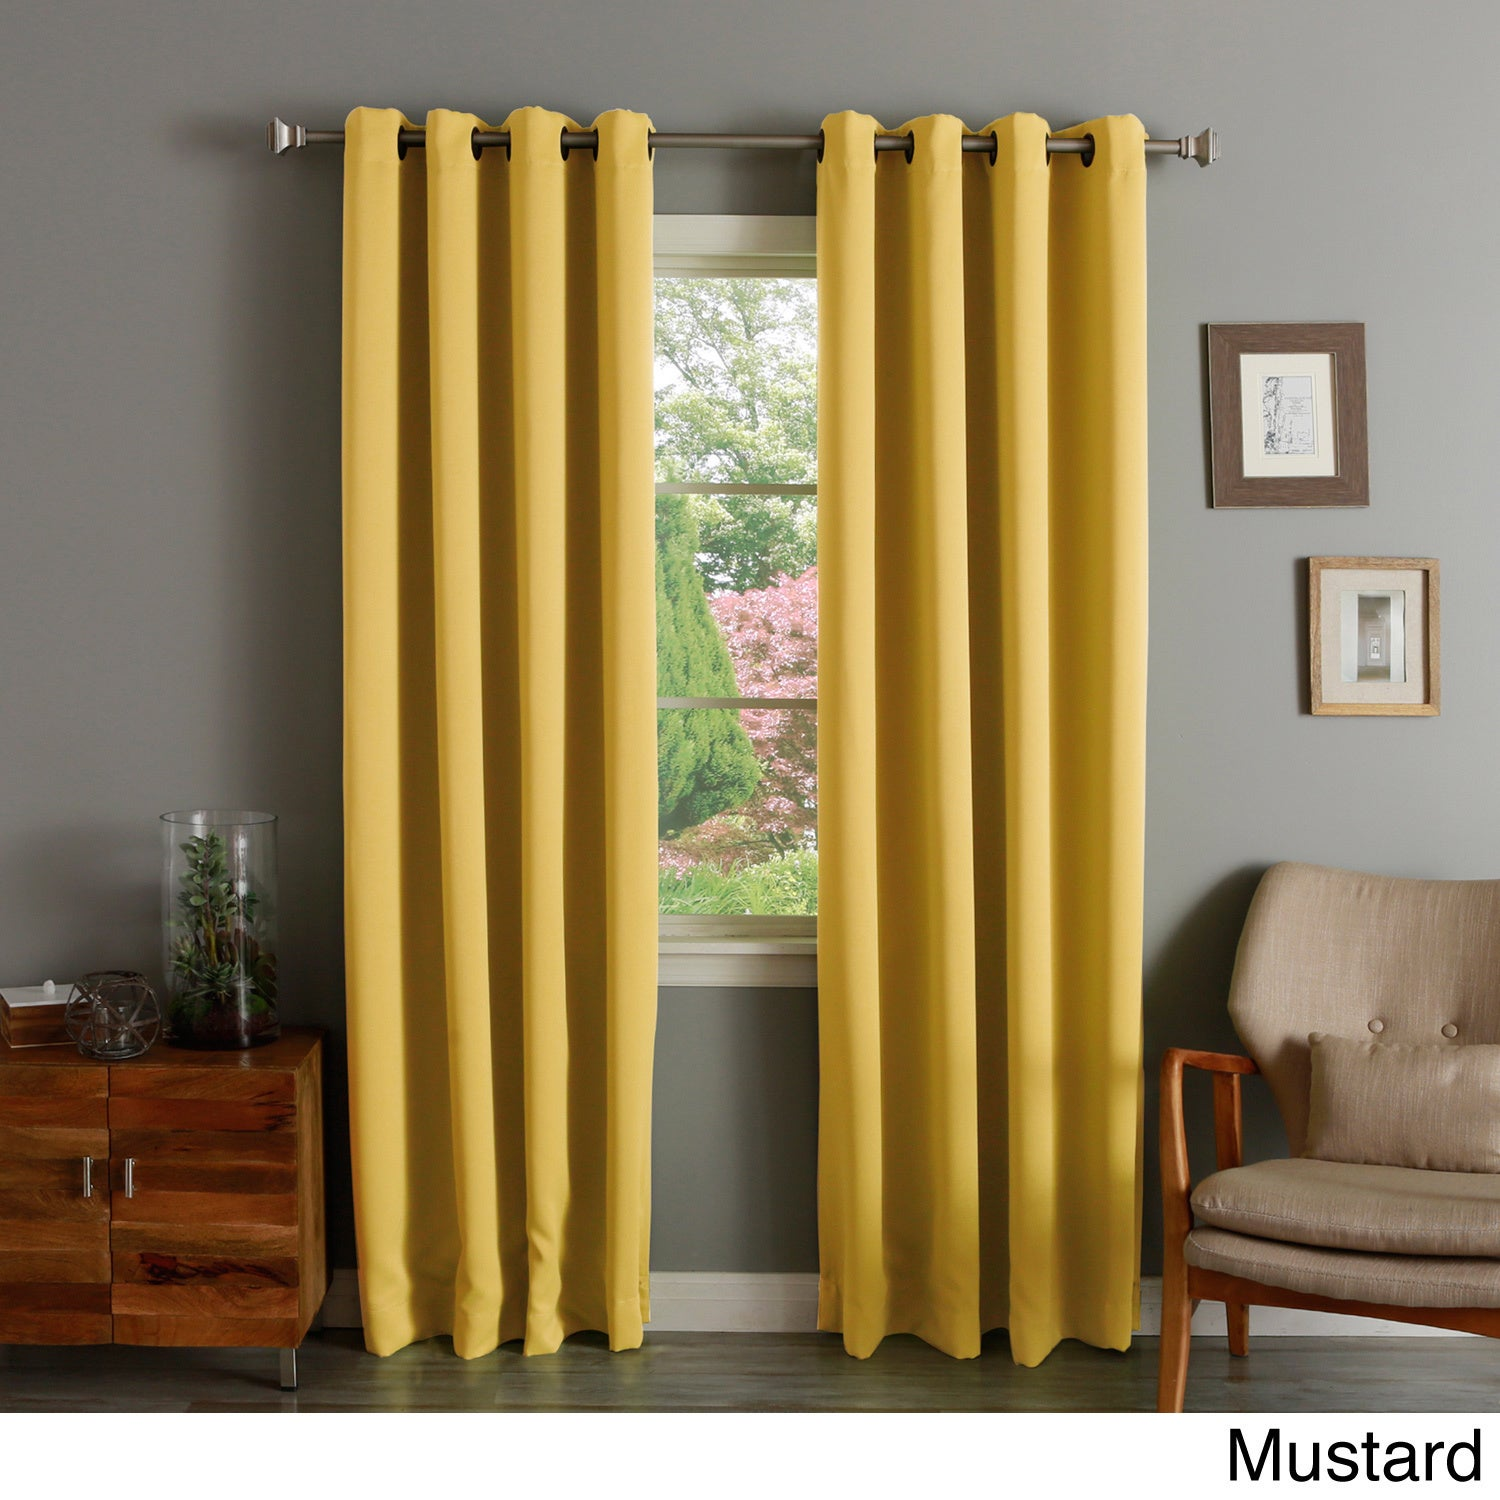 Aurora Home Thermal Insulated Blackout Grommet Top Curtain Panel Pair (3  Options Available)